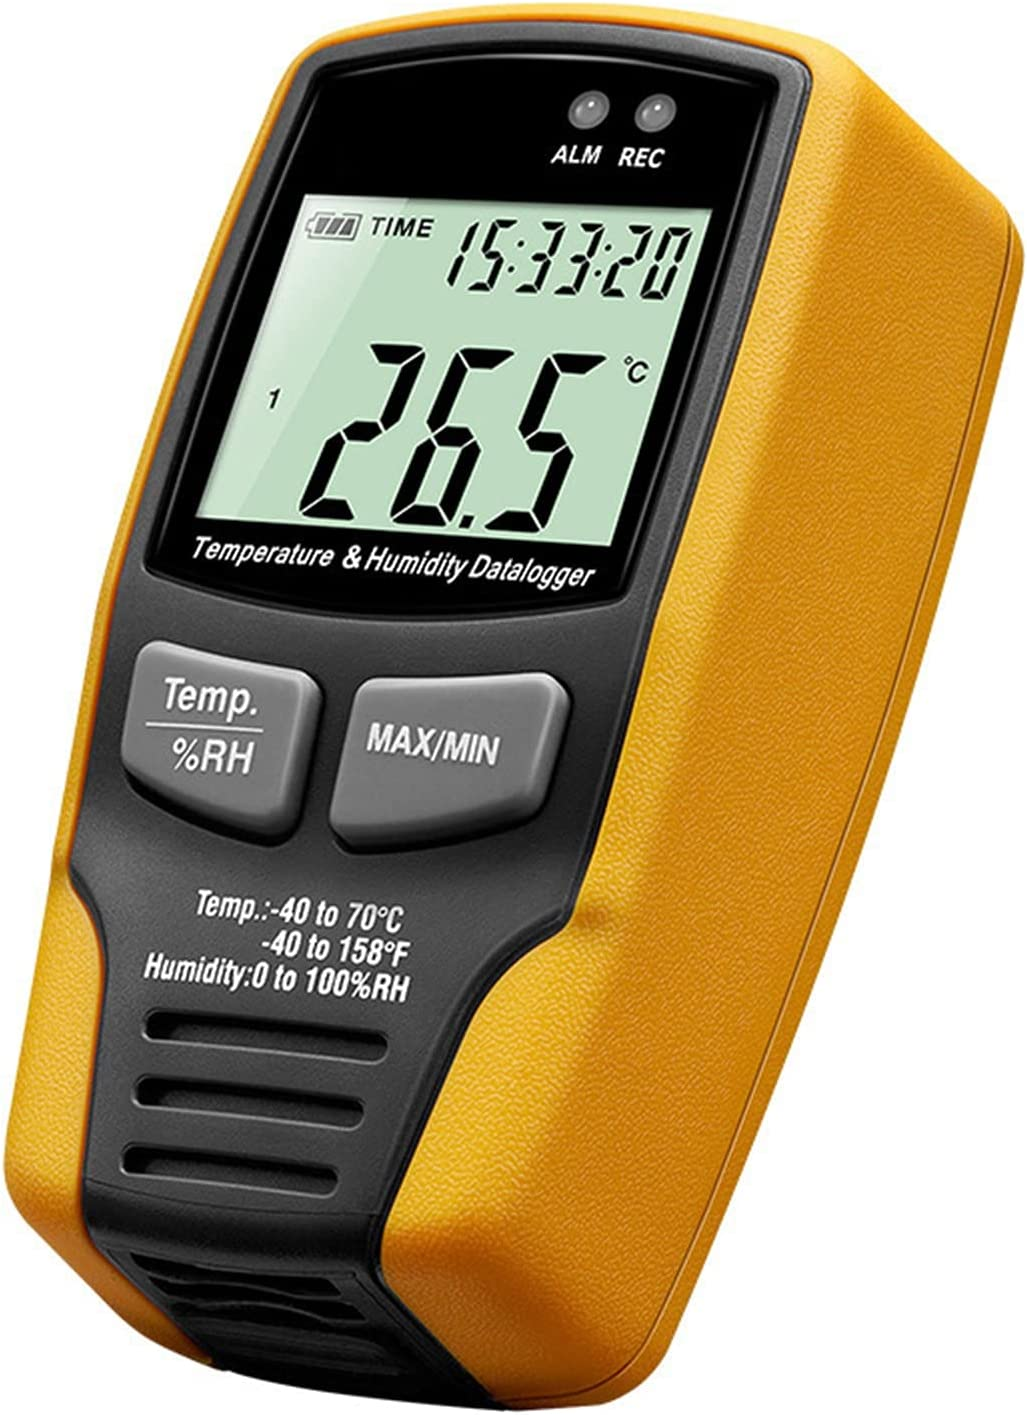 YHMY Super sale Soil Test Kits Digital Wood Moisture T Meter High-Precision Inventory cleanup selling sale